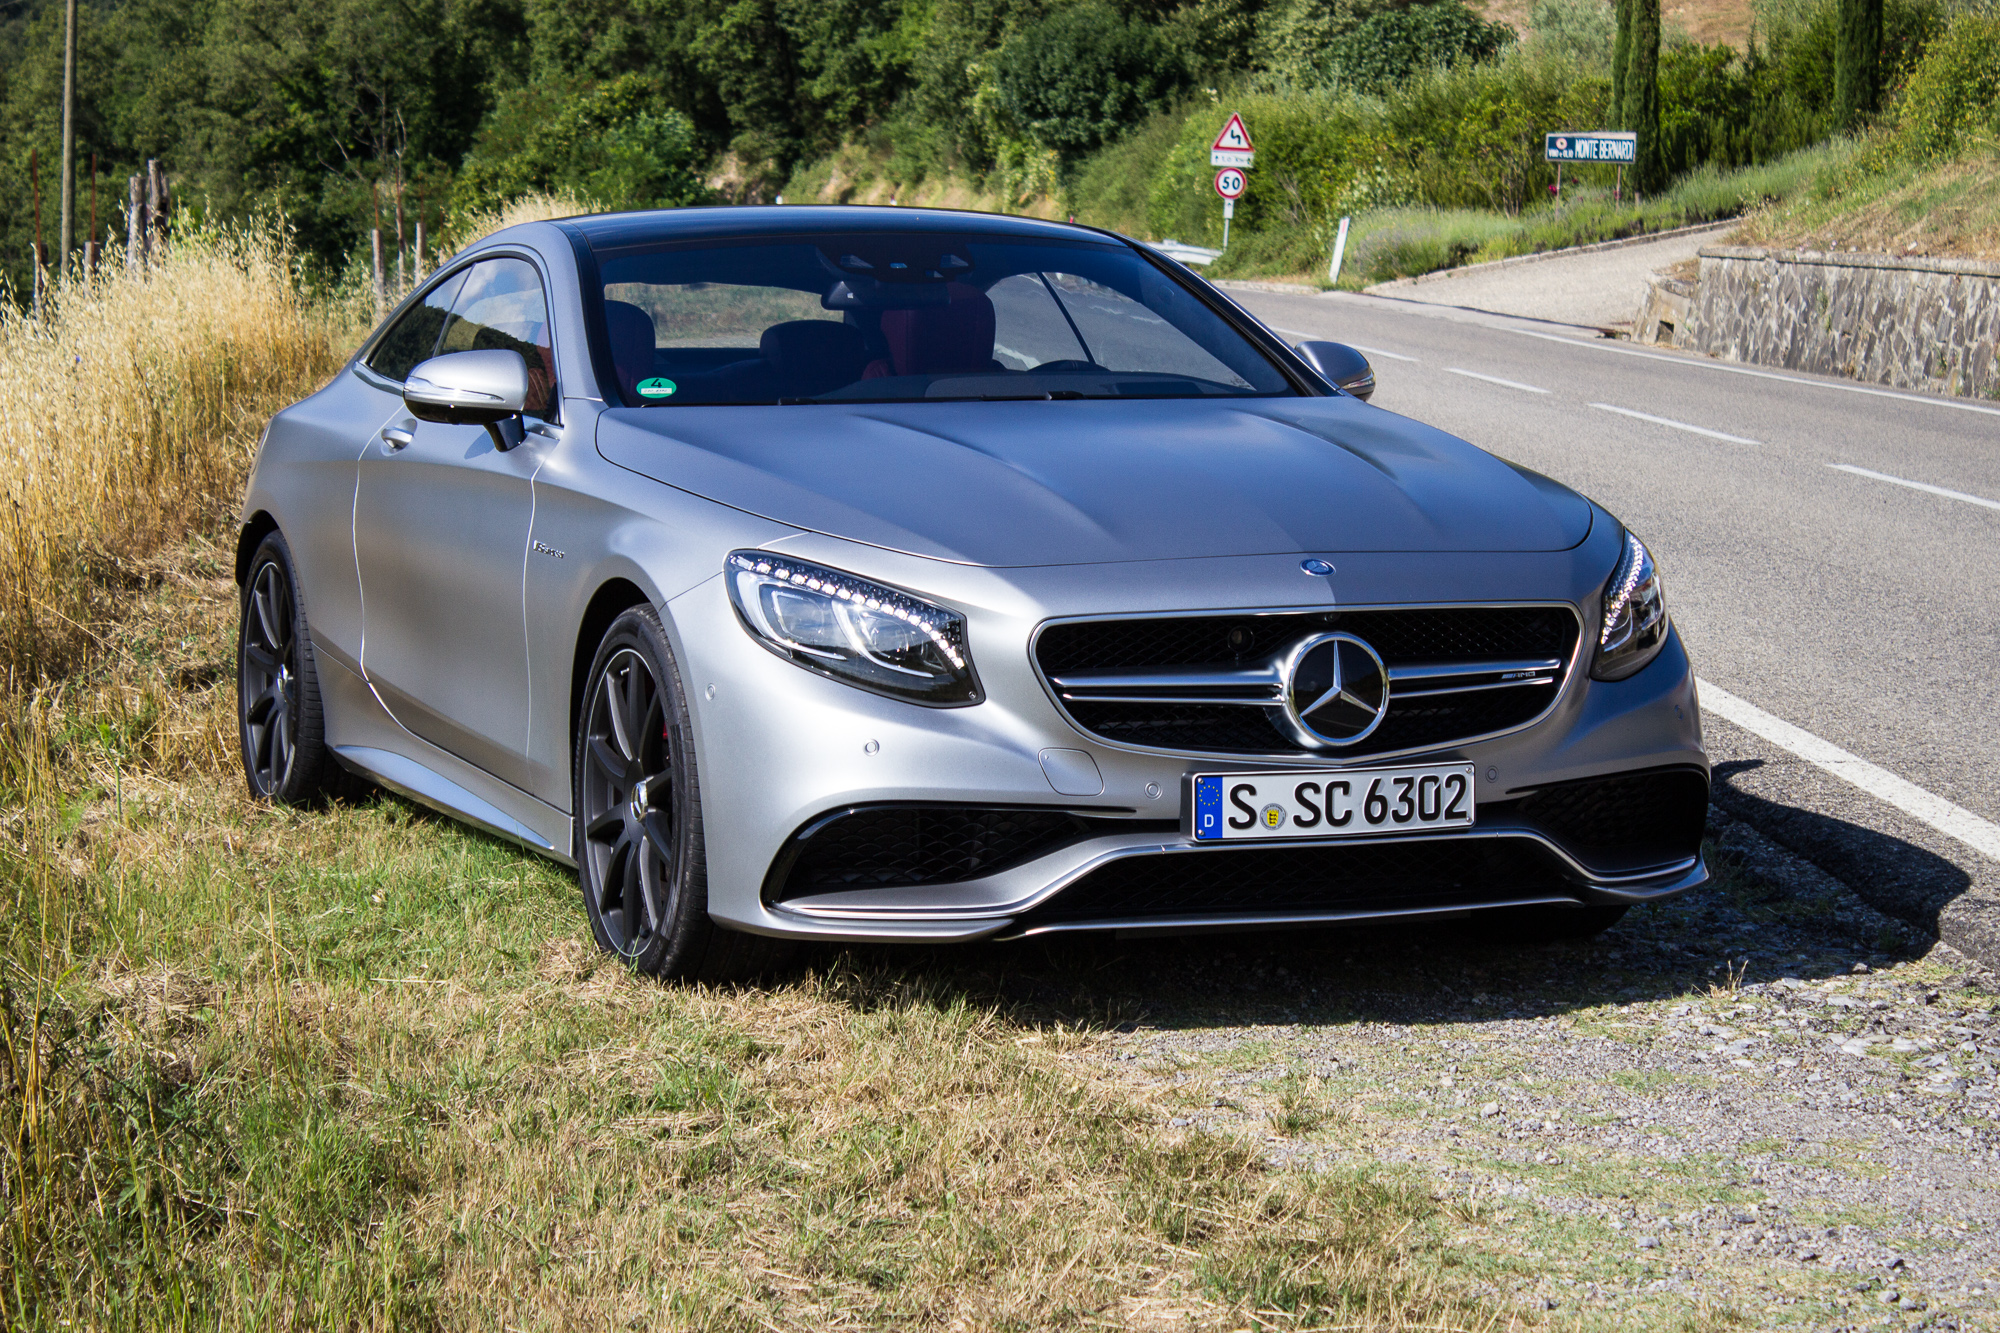 2015 mercedes benz s63 amg coupe first drive review. Black Bedroom Furniture Sets. Home Design Ideas